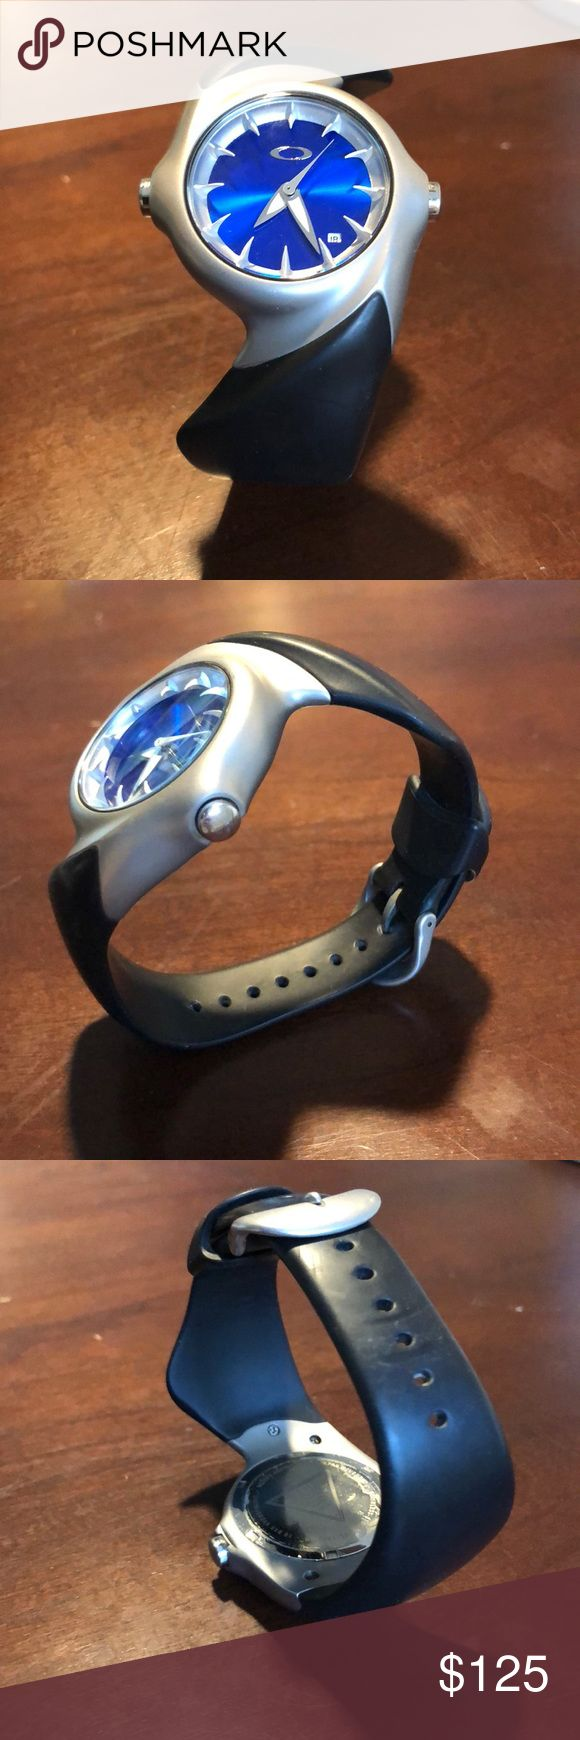 Men's Oakley crush watch Oakley crush watch. Black rubber band, silver body and blue face. Excellent condition, watch will need new battery. Oakley Accessories Watches